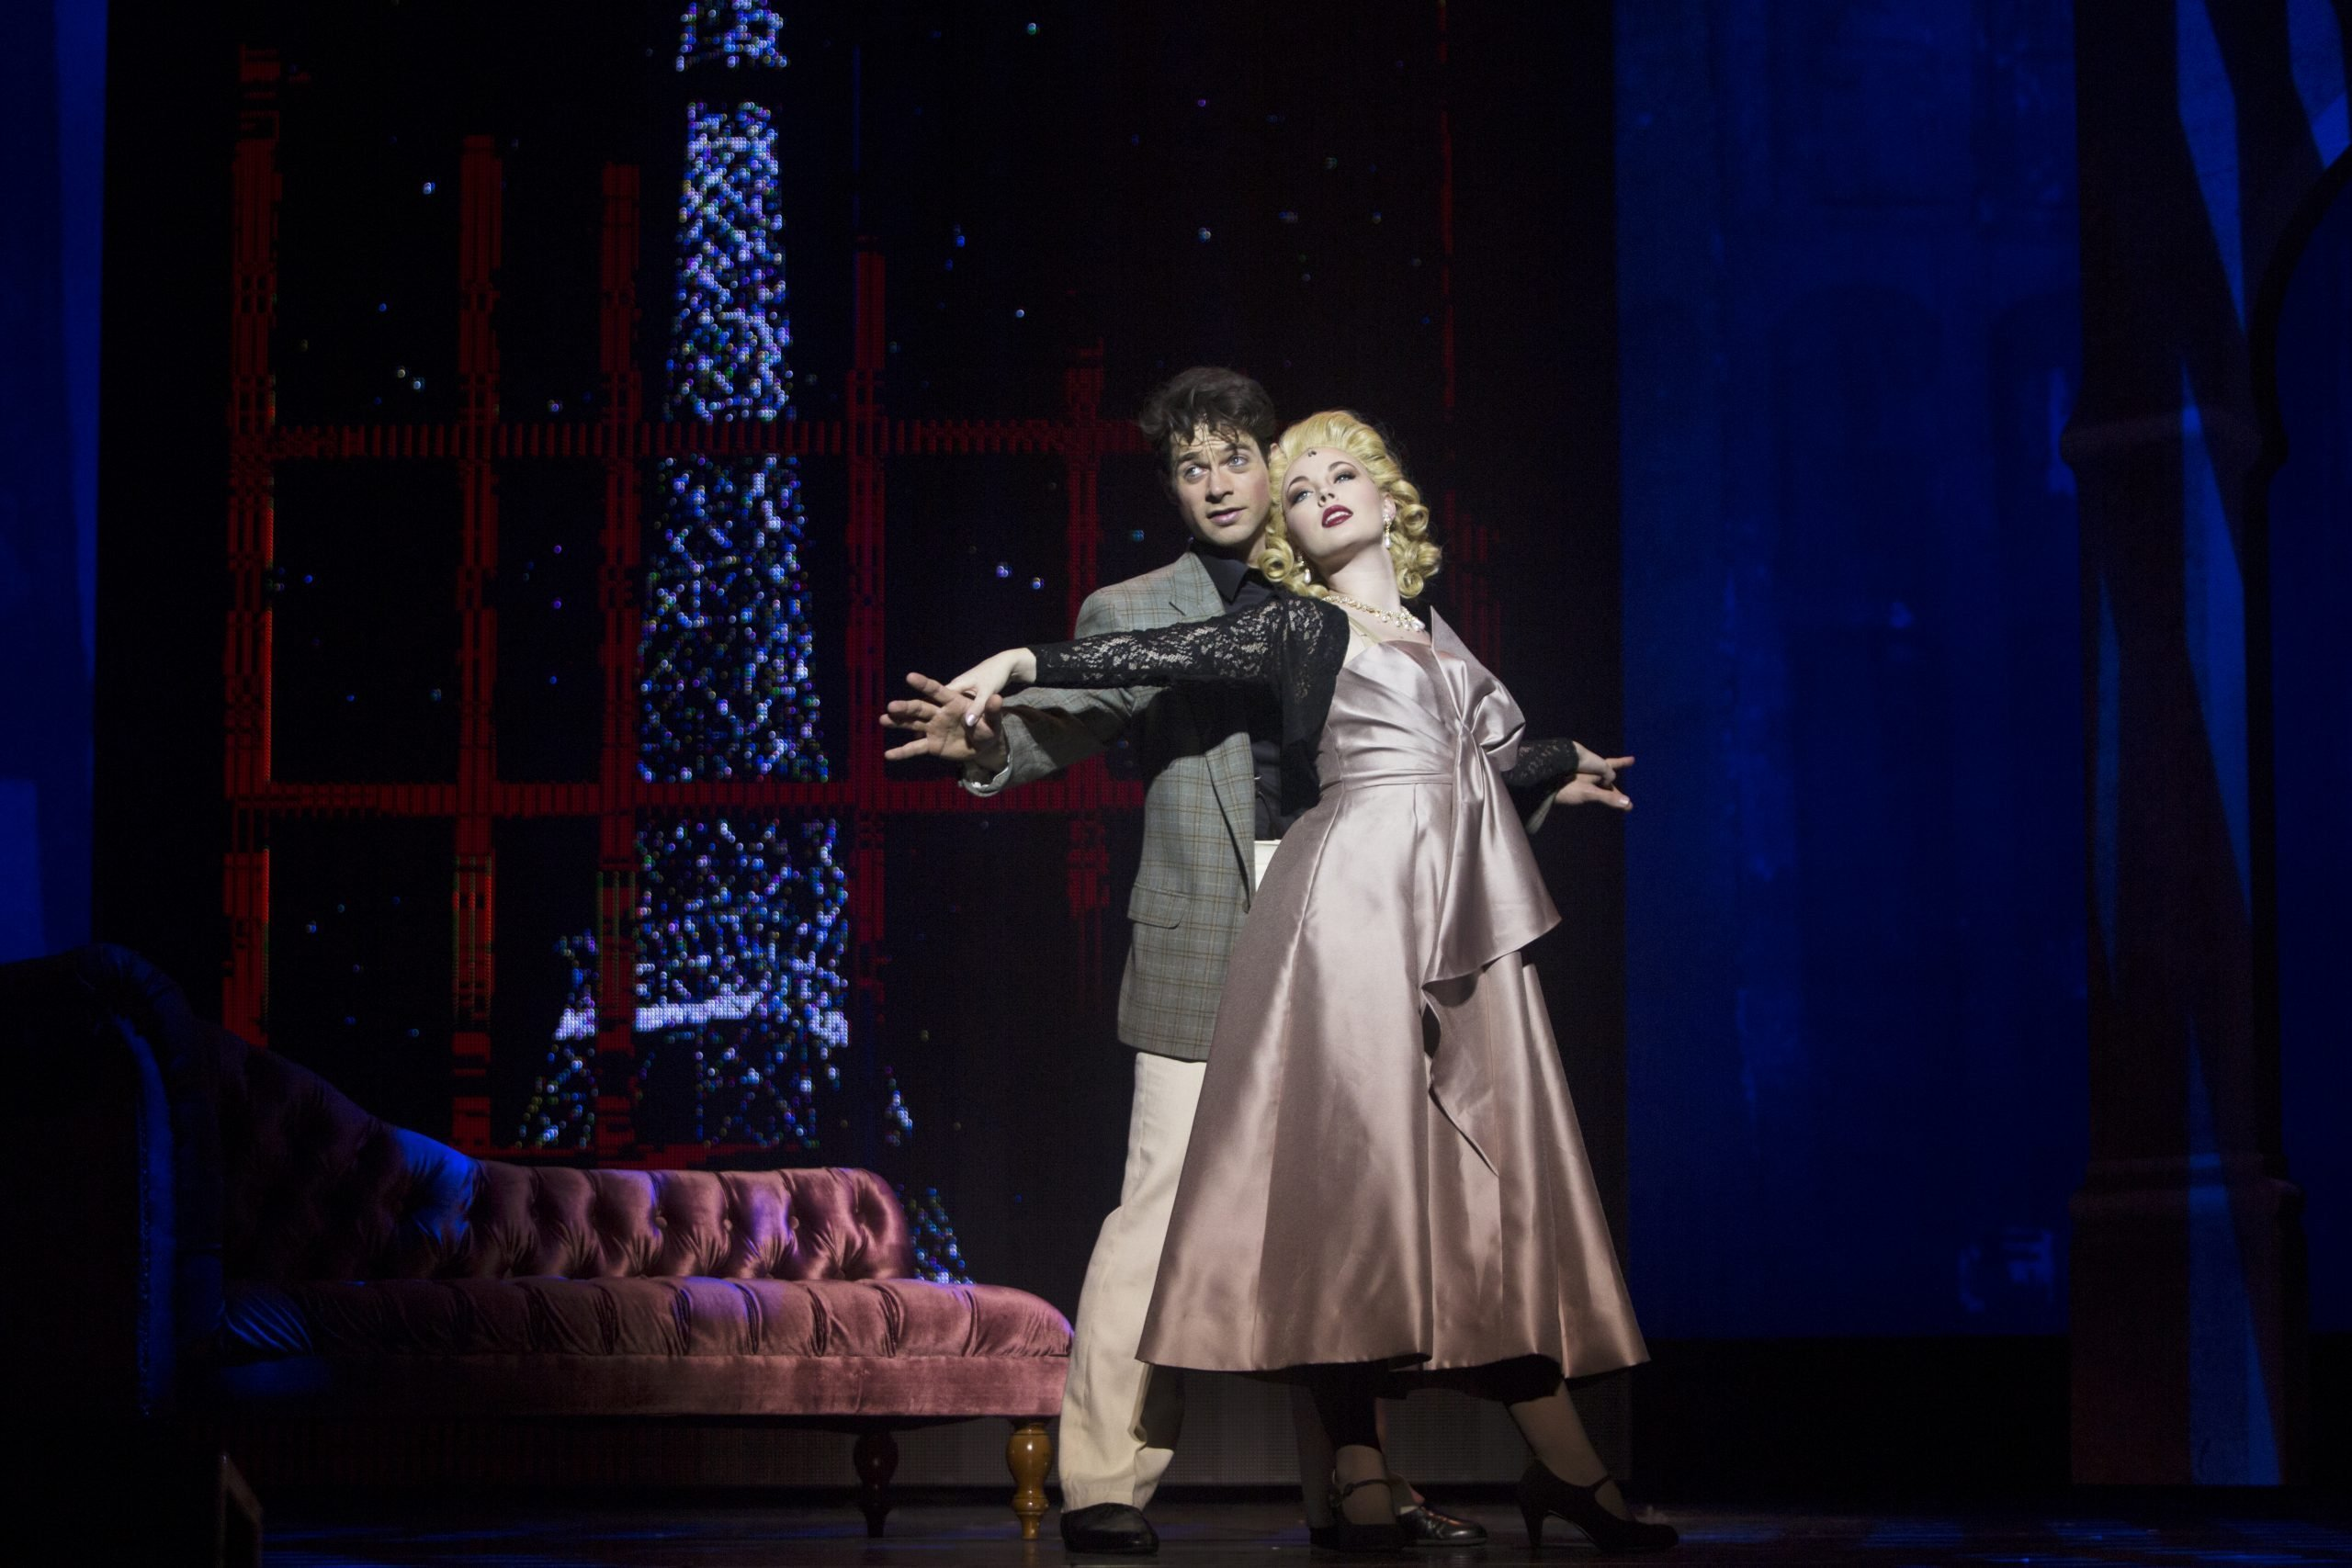 Branson Bice as Jerry Mulligan and Bella Muller as Milo Davenport in An American in Paris